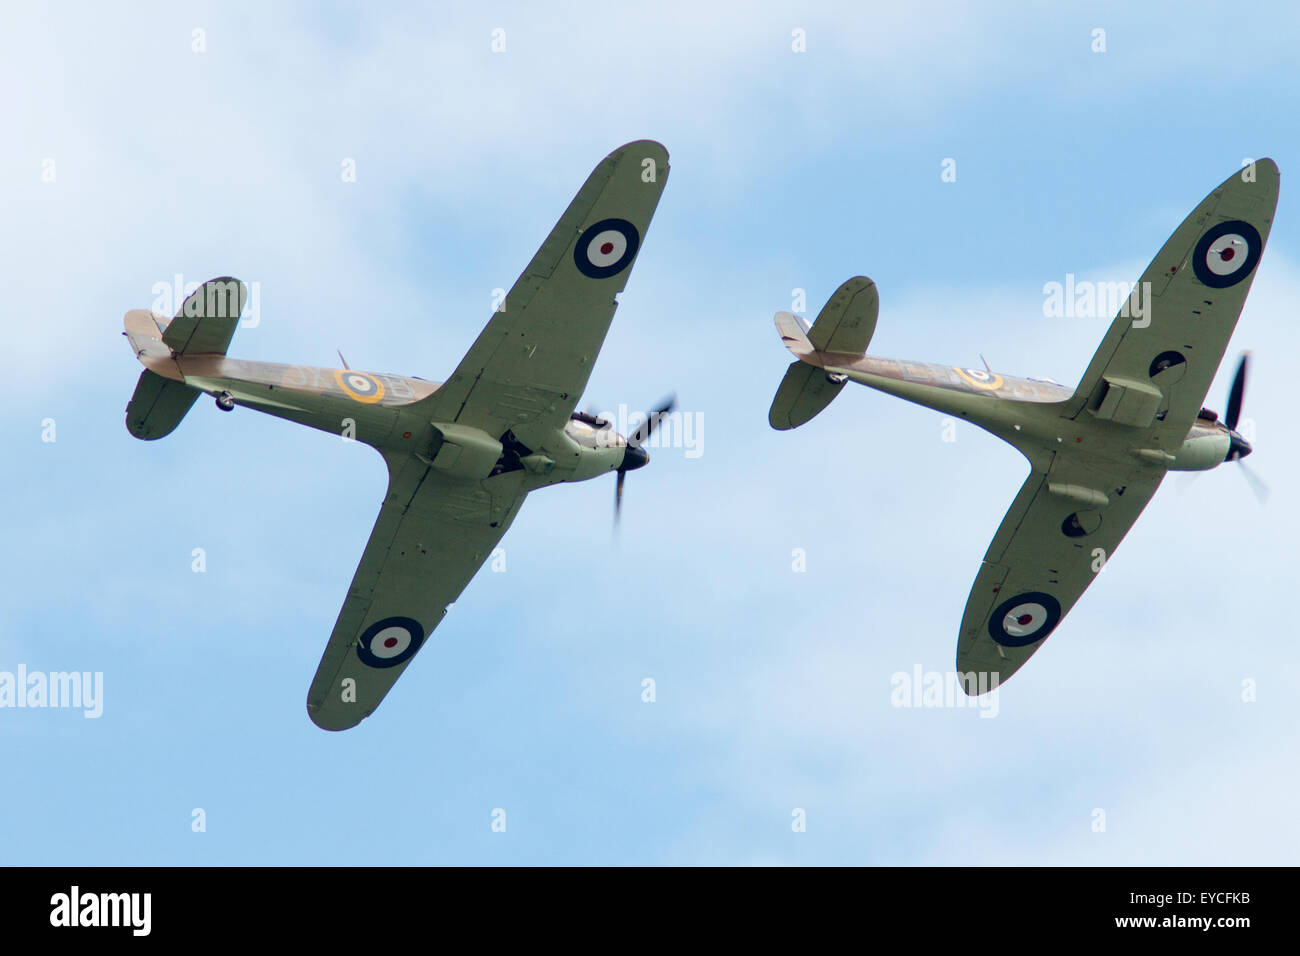 Sunderland, UK. 25th July, 2015. WW2 Spitfire and Hurricane flying at the Sunderland Airshow, July 2015 Credit: - Stock Image